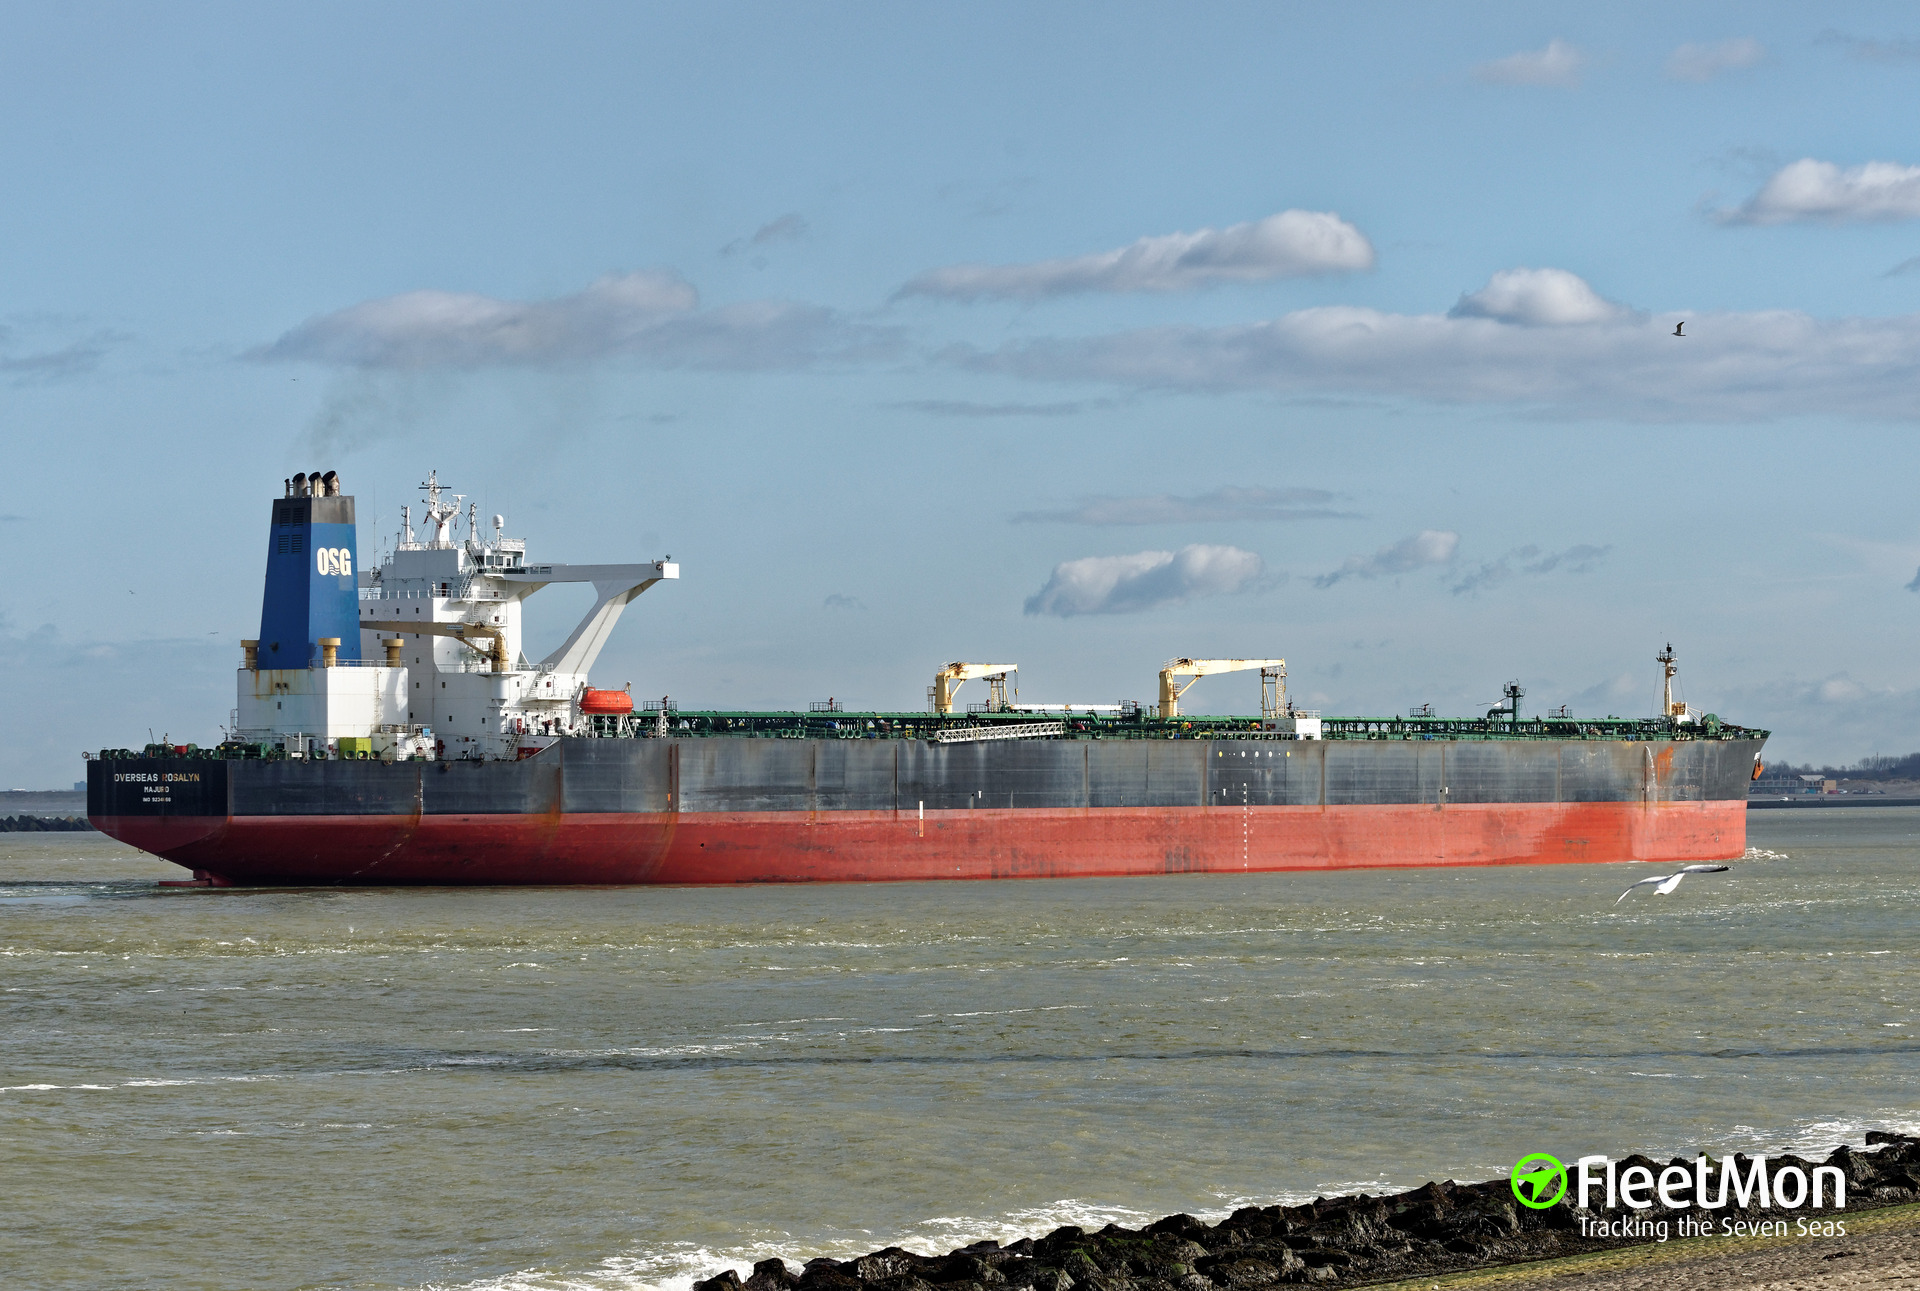 SEAWAYS ROSALYN